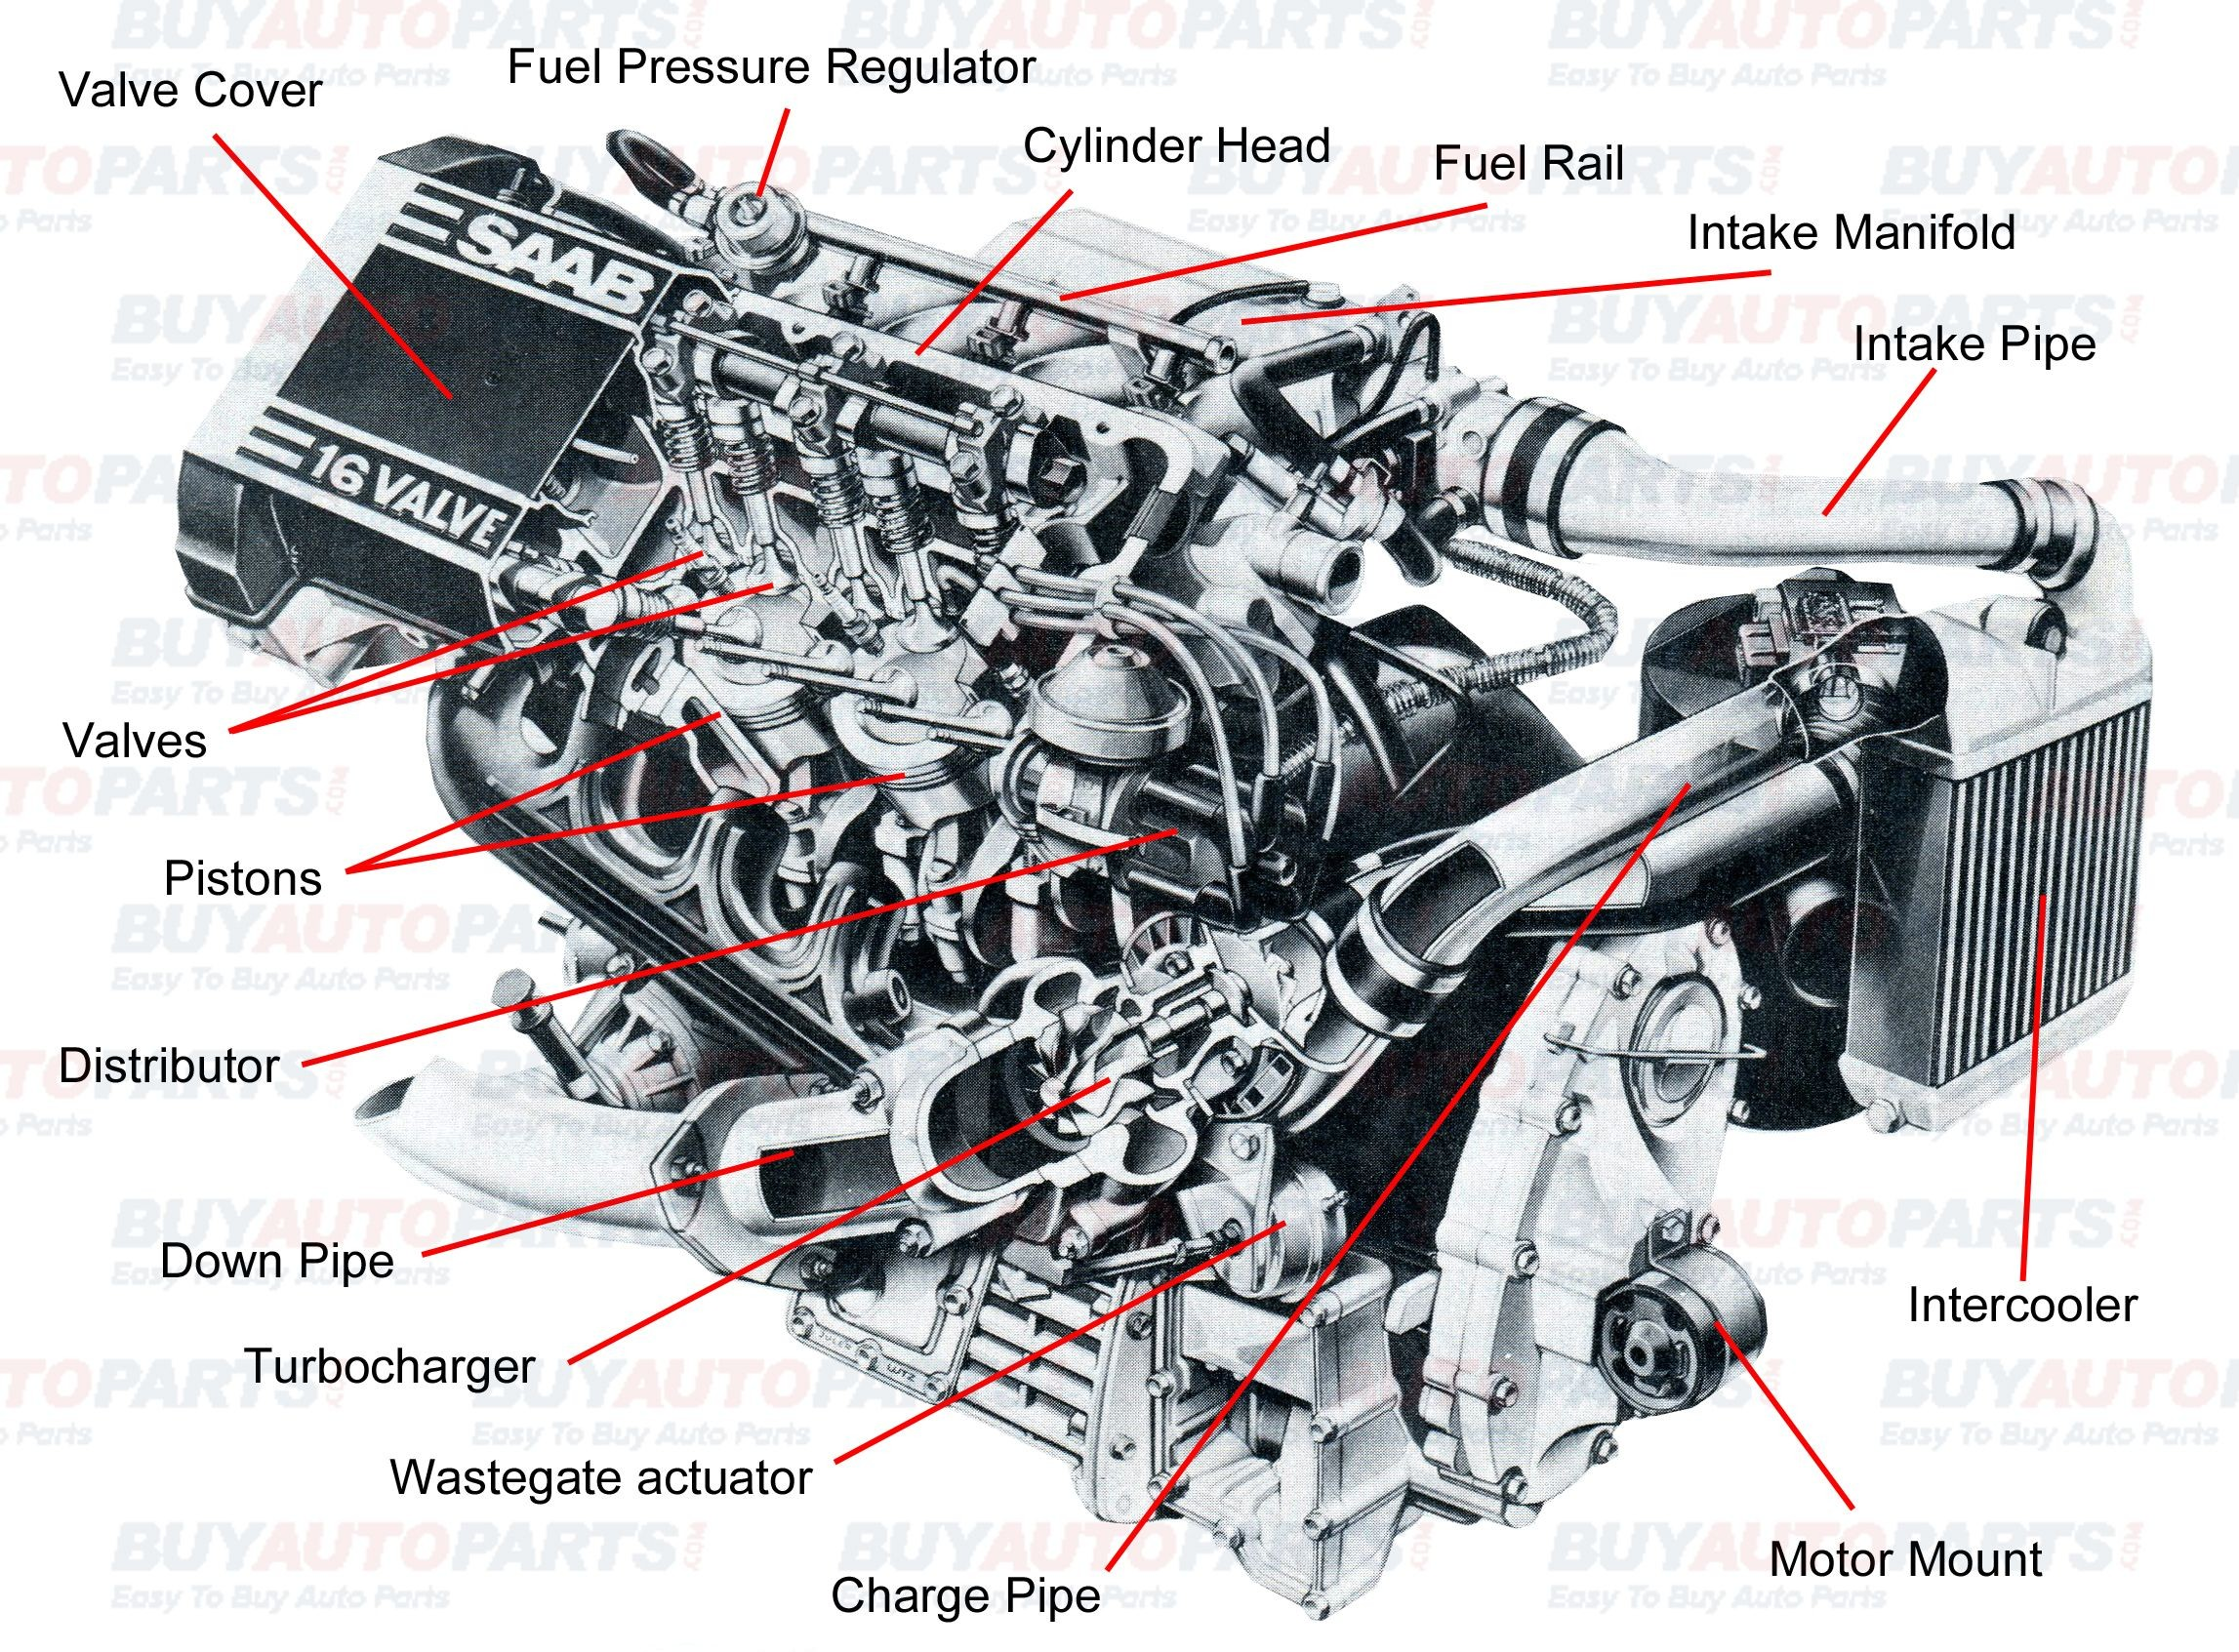 Turbo Engine Diagram Pin by Jimmiejanet Testellamwfz On What Does An Engine with Turbo Of Turbo Engine Diagram